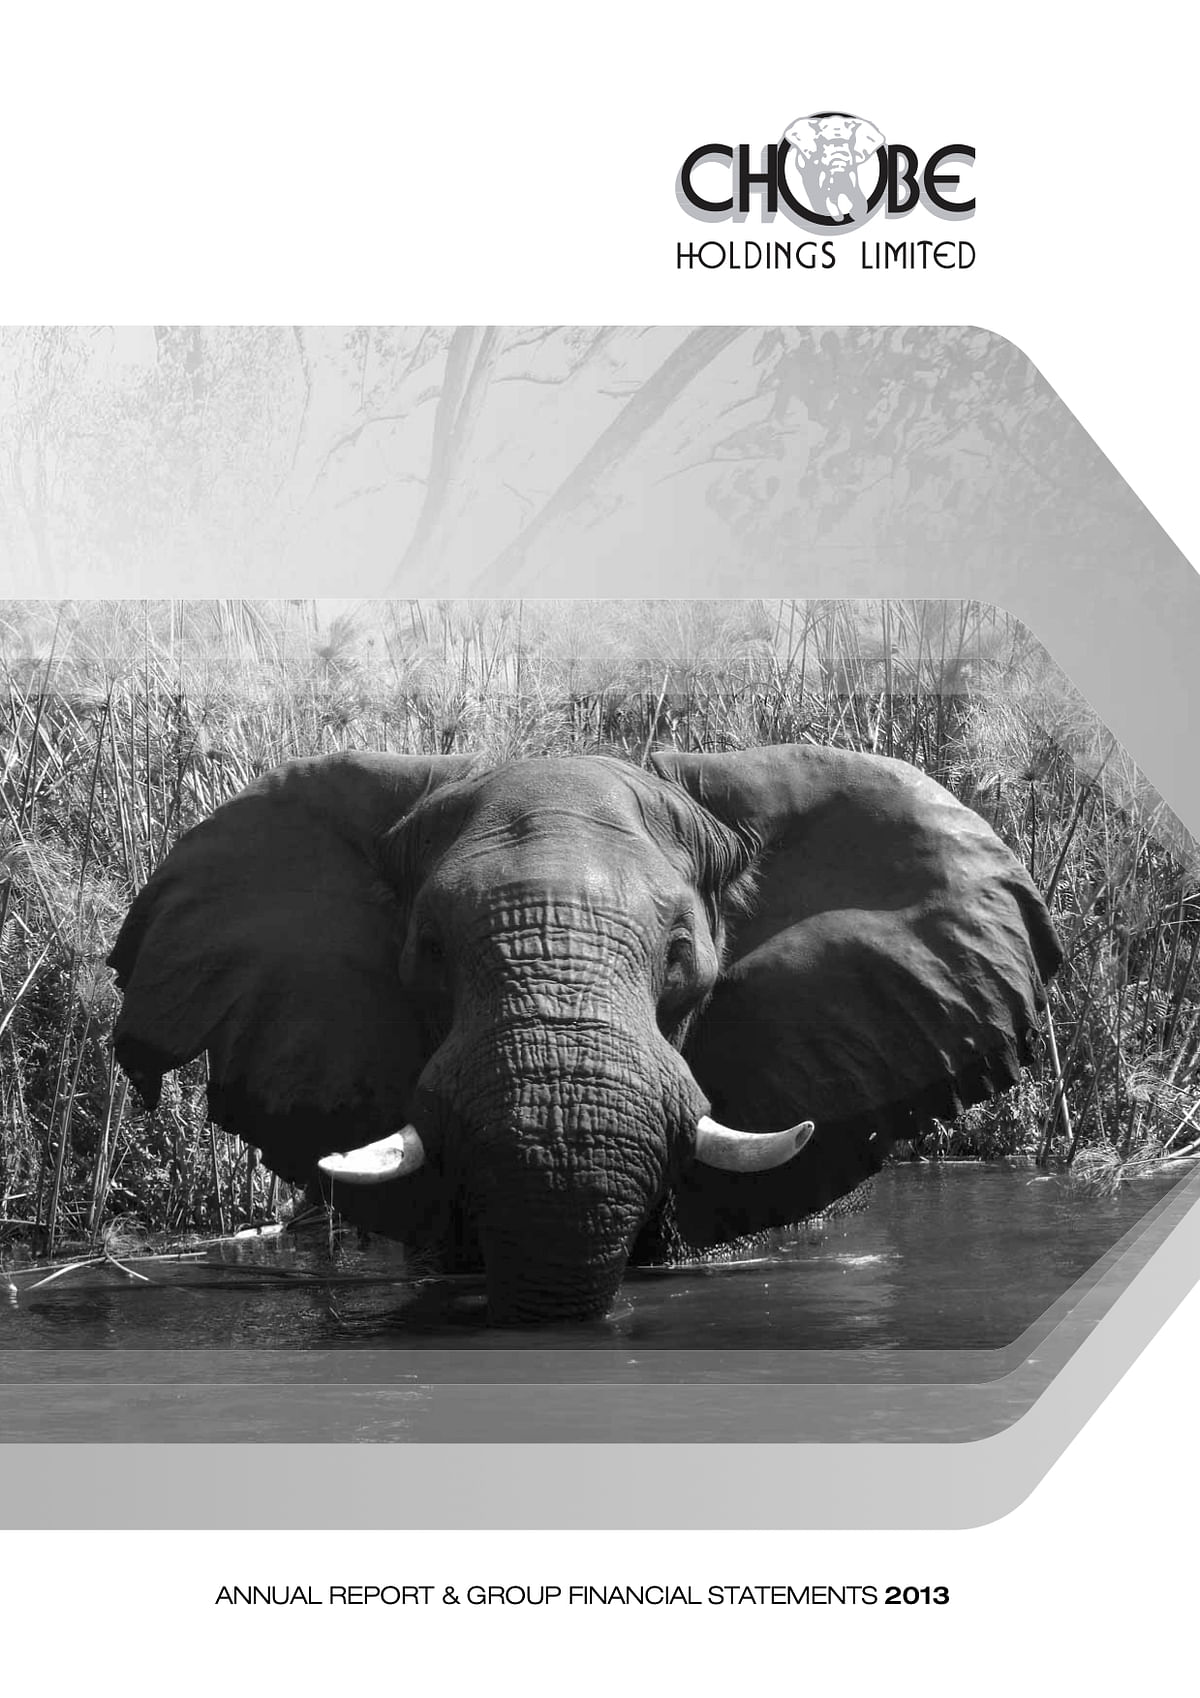 Chobe Holdings Limited Annual Report 2013